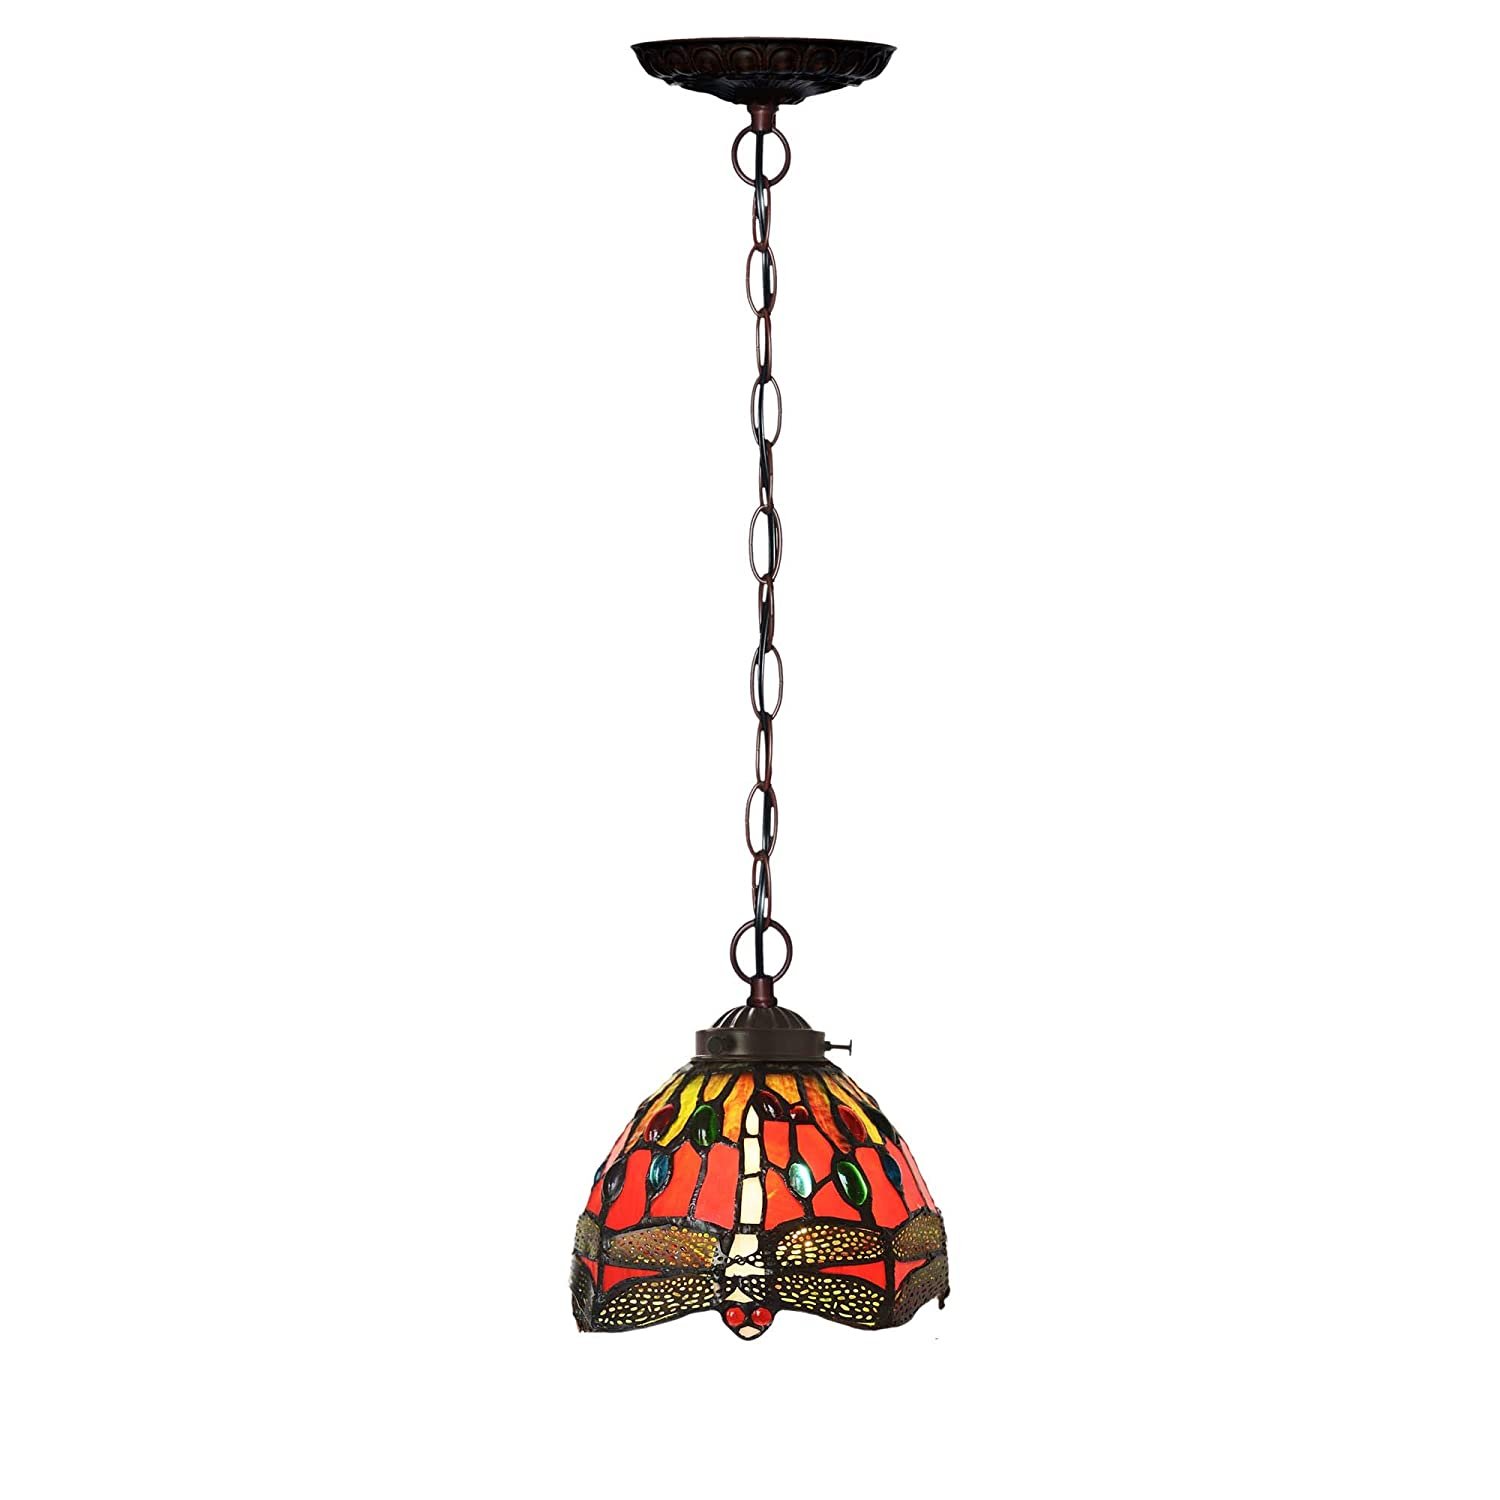 Bieye L10083 7 inch Dragonfly Tiffany Style Stained Glass Ceiling Pendant Fixture Hanging Lamp (Red)